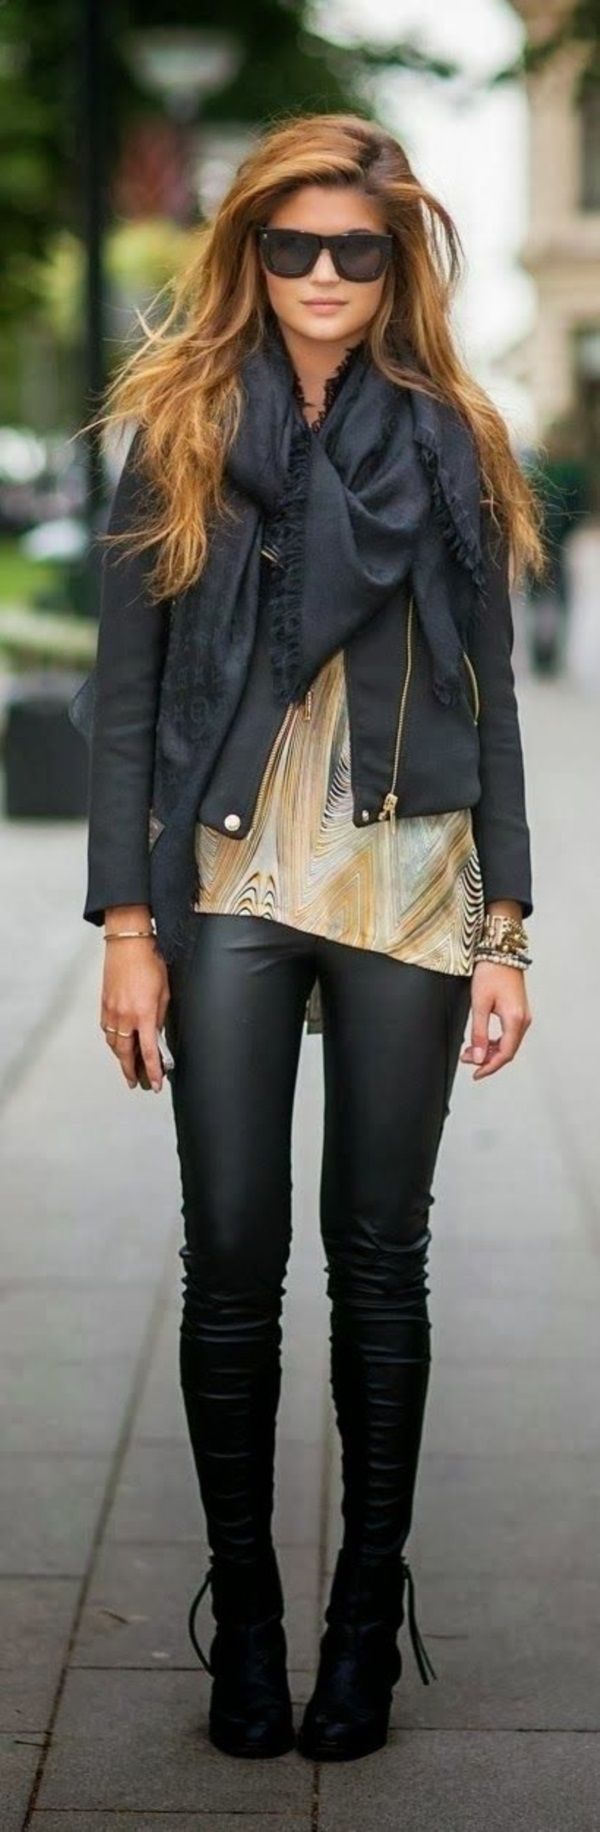 Best 25+ Edgy Fashion Style Ideas On Pinterest | Edgy Summer Style Fashion Edgy And Classy Edgy ...